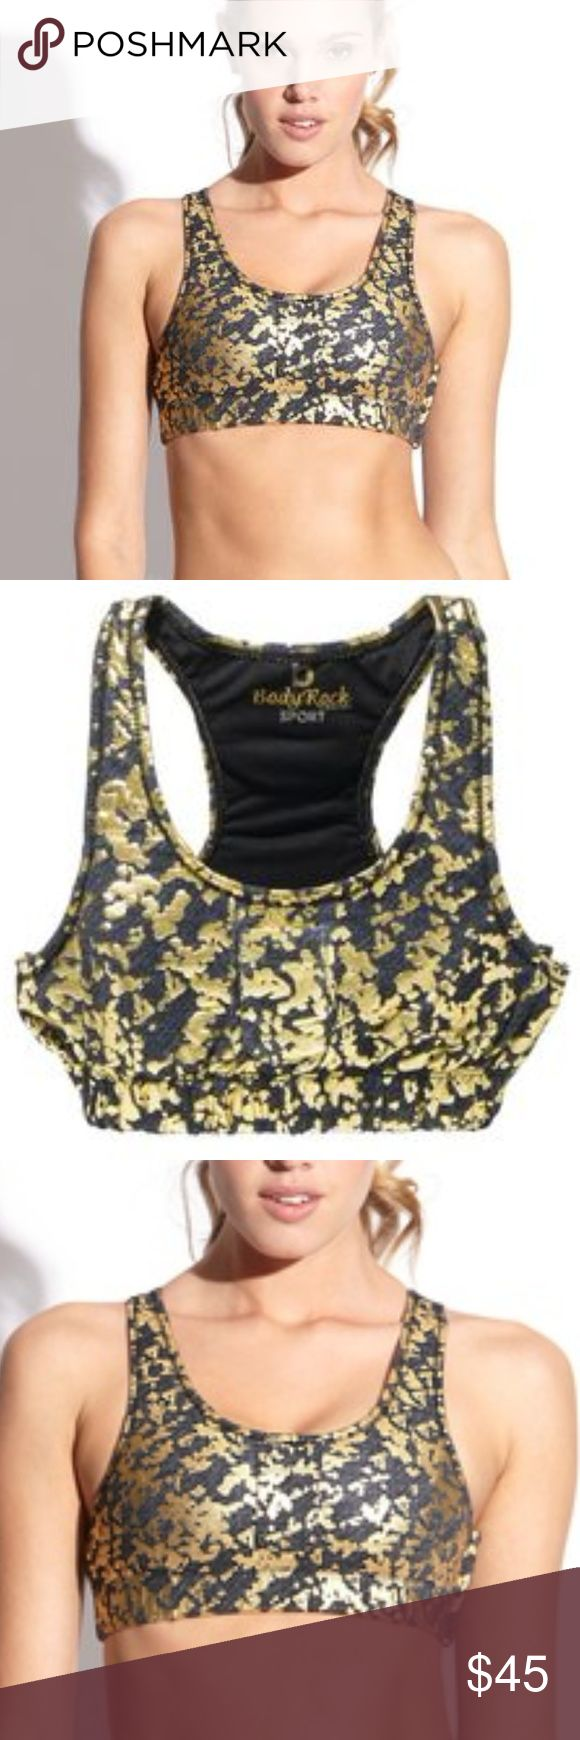 "ODYROCK SPORT MEGAN LOCK EM DOWN SPORTS BRA gold RARE BODYROCK SPORT ""MEGAN"" LOCK EM DOWN SPORTS BRA WITH GOLD STUDS ALONG THE NECKLINE WITH SIDE ZIPPER! Brand new without tags, Navy Blue with Gold Metallic print with gold stud accents along the neckline BodyRock Sport is a manufacturer of sports bras and other clothing in New York City. The bras designed by Kelly Dooley, are described as ""blinged-out"", with Swarovski crystals or studs, Audio pocket, and Zippered pockets. Audio pocket on the…"